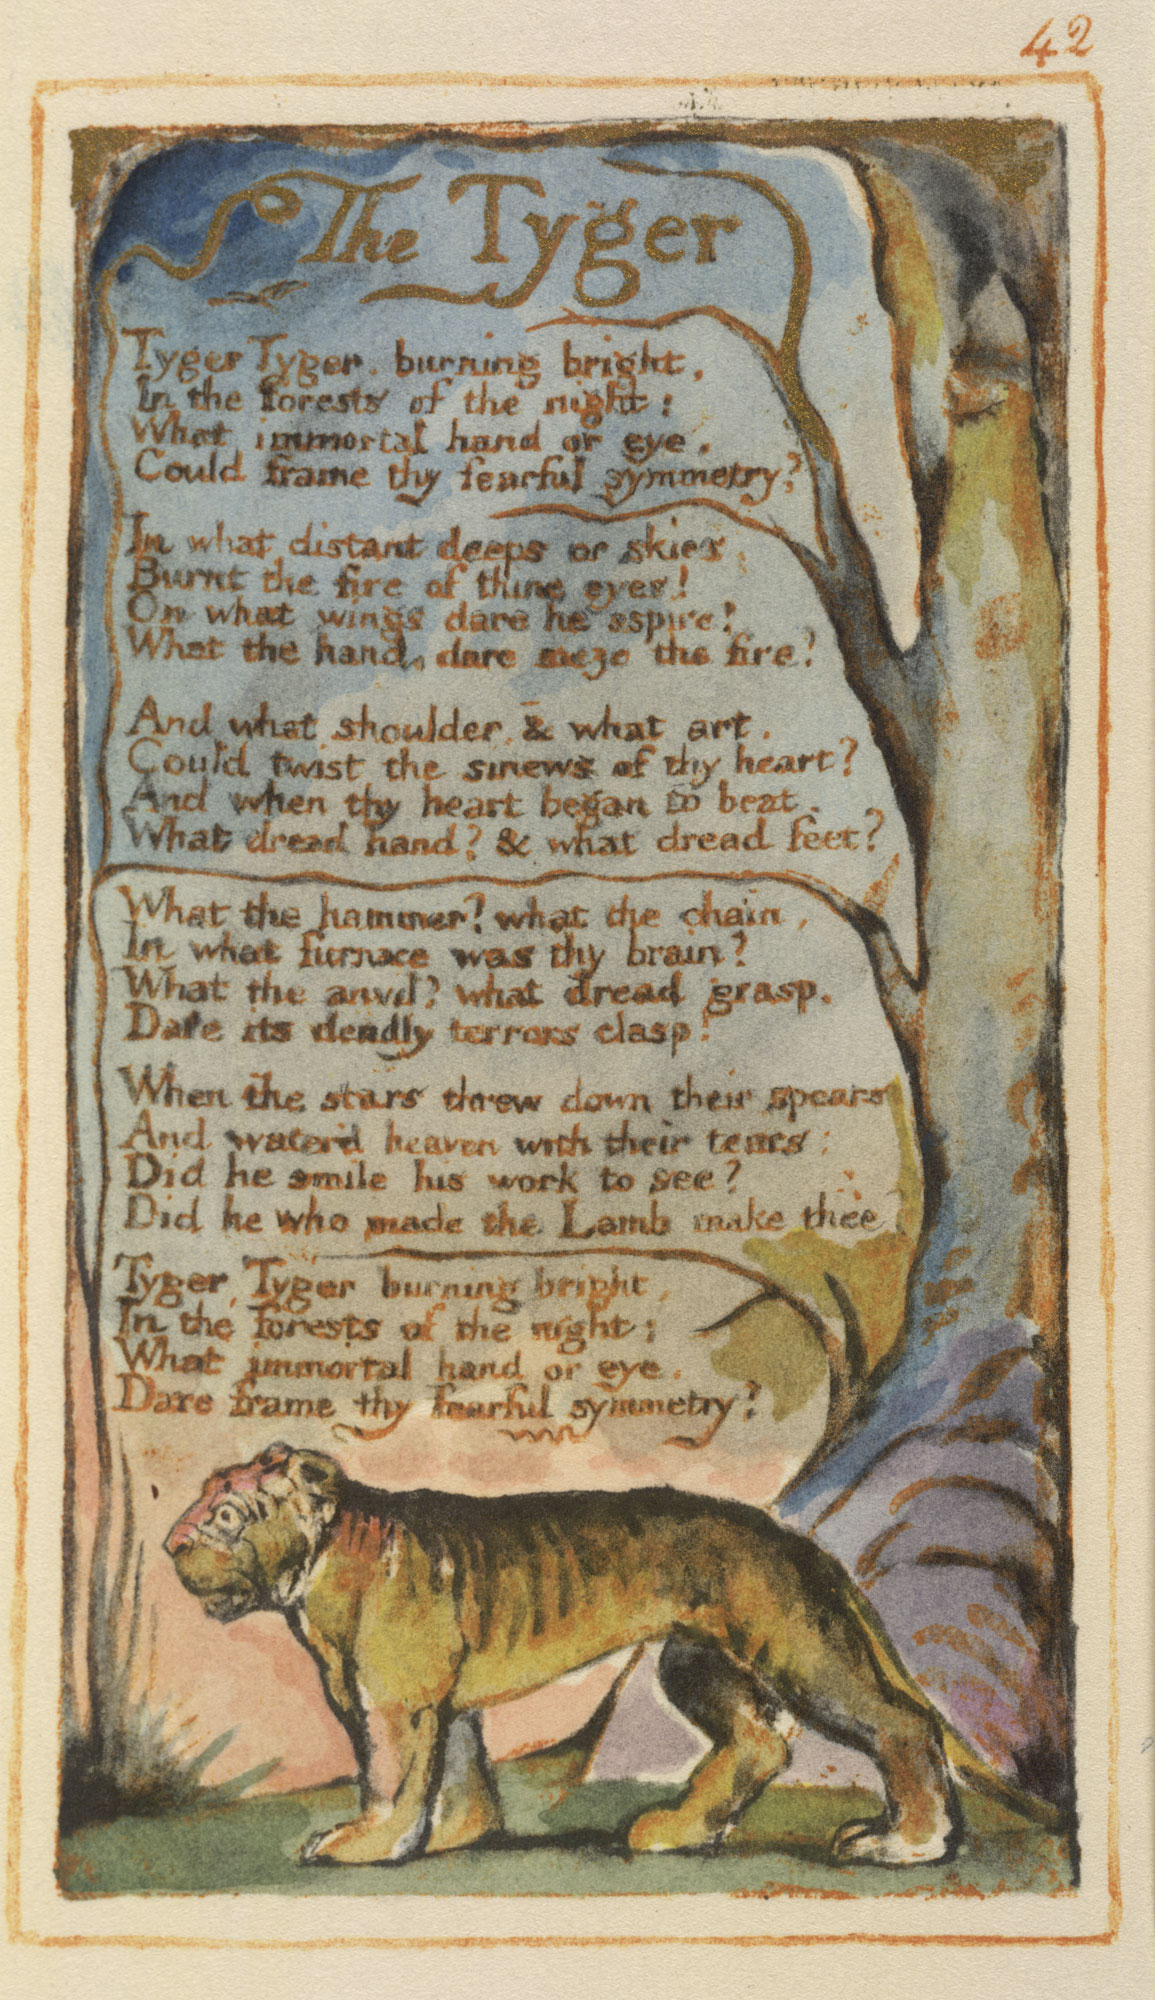 William Blake's Songs of Innocence and Experience [page: 42]